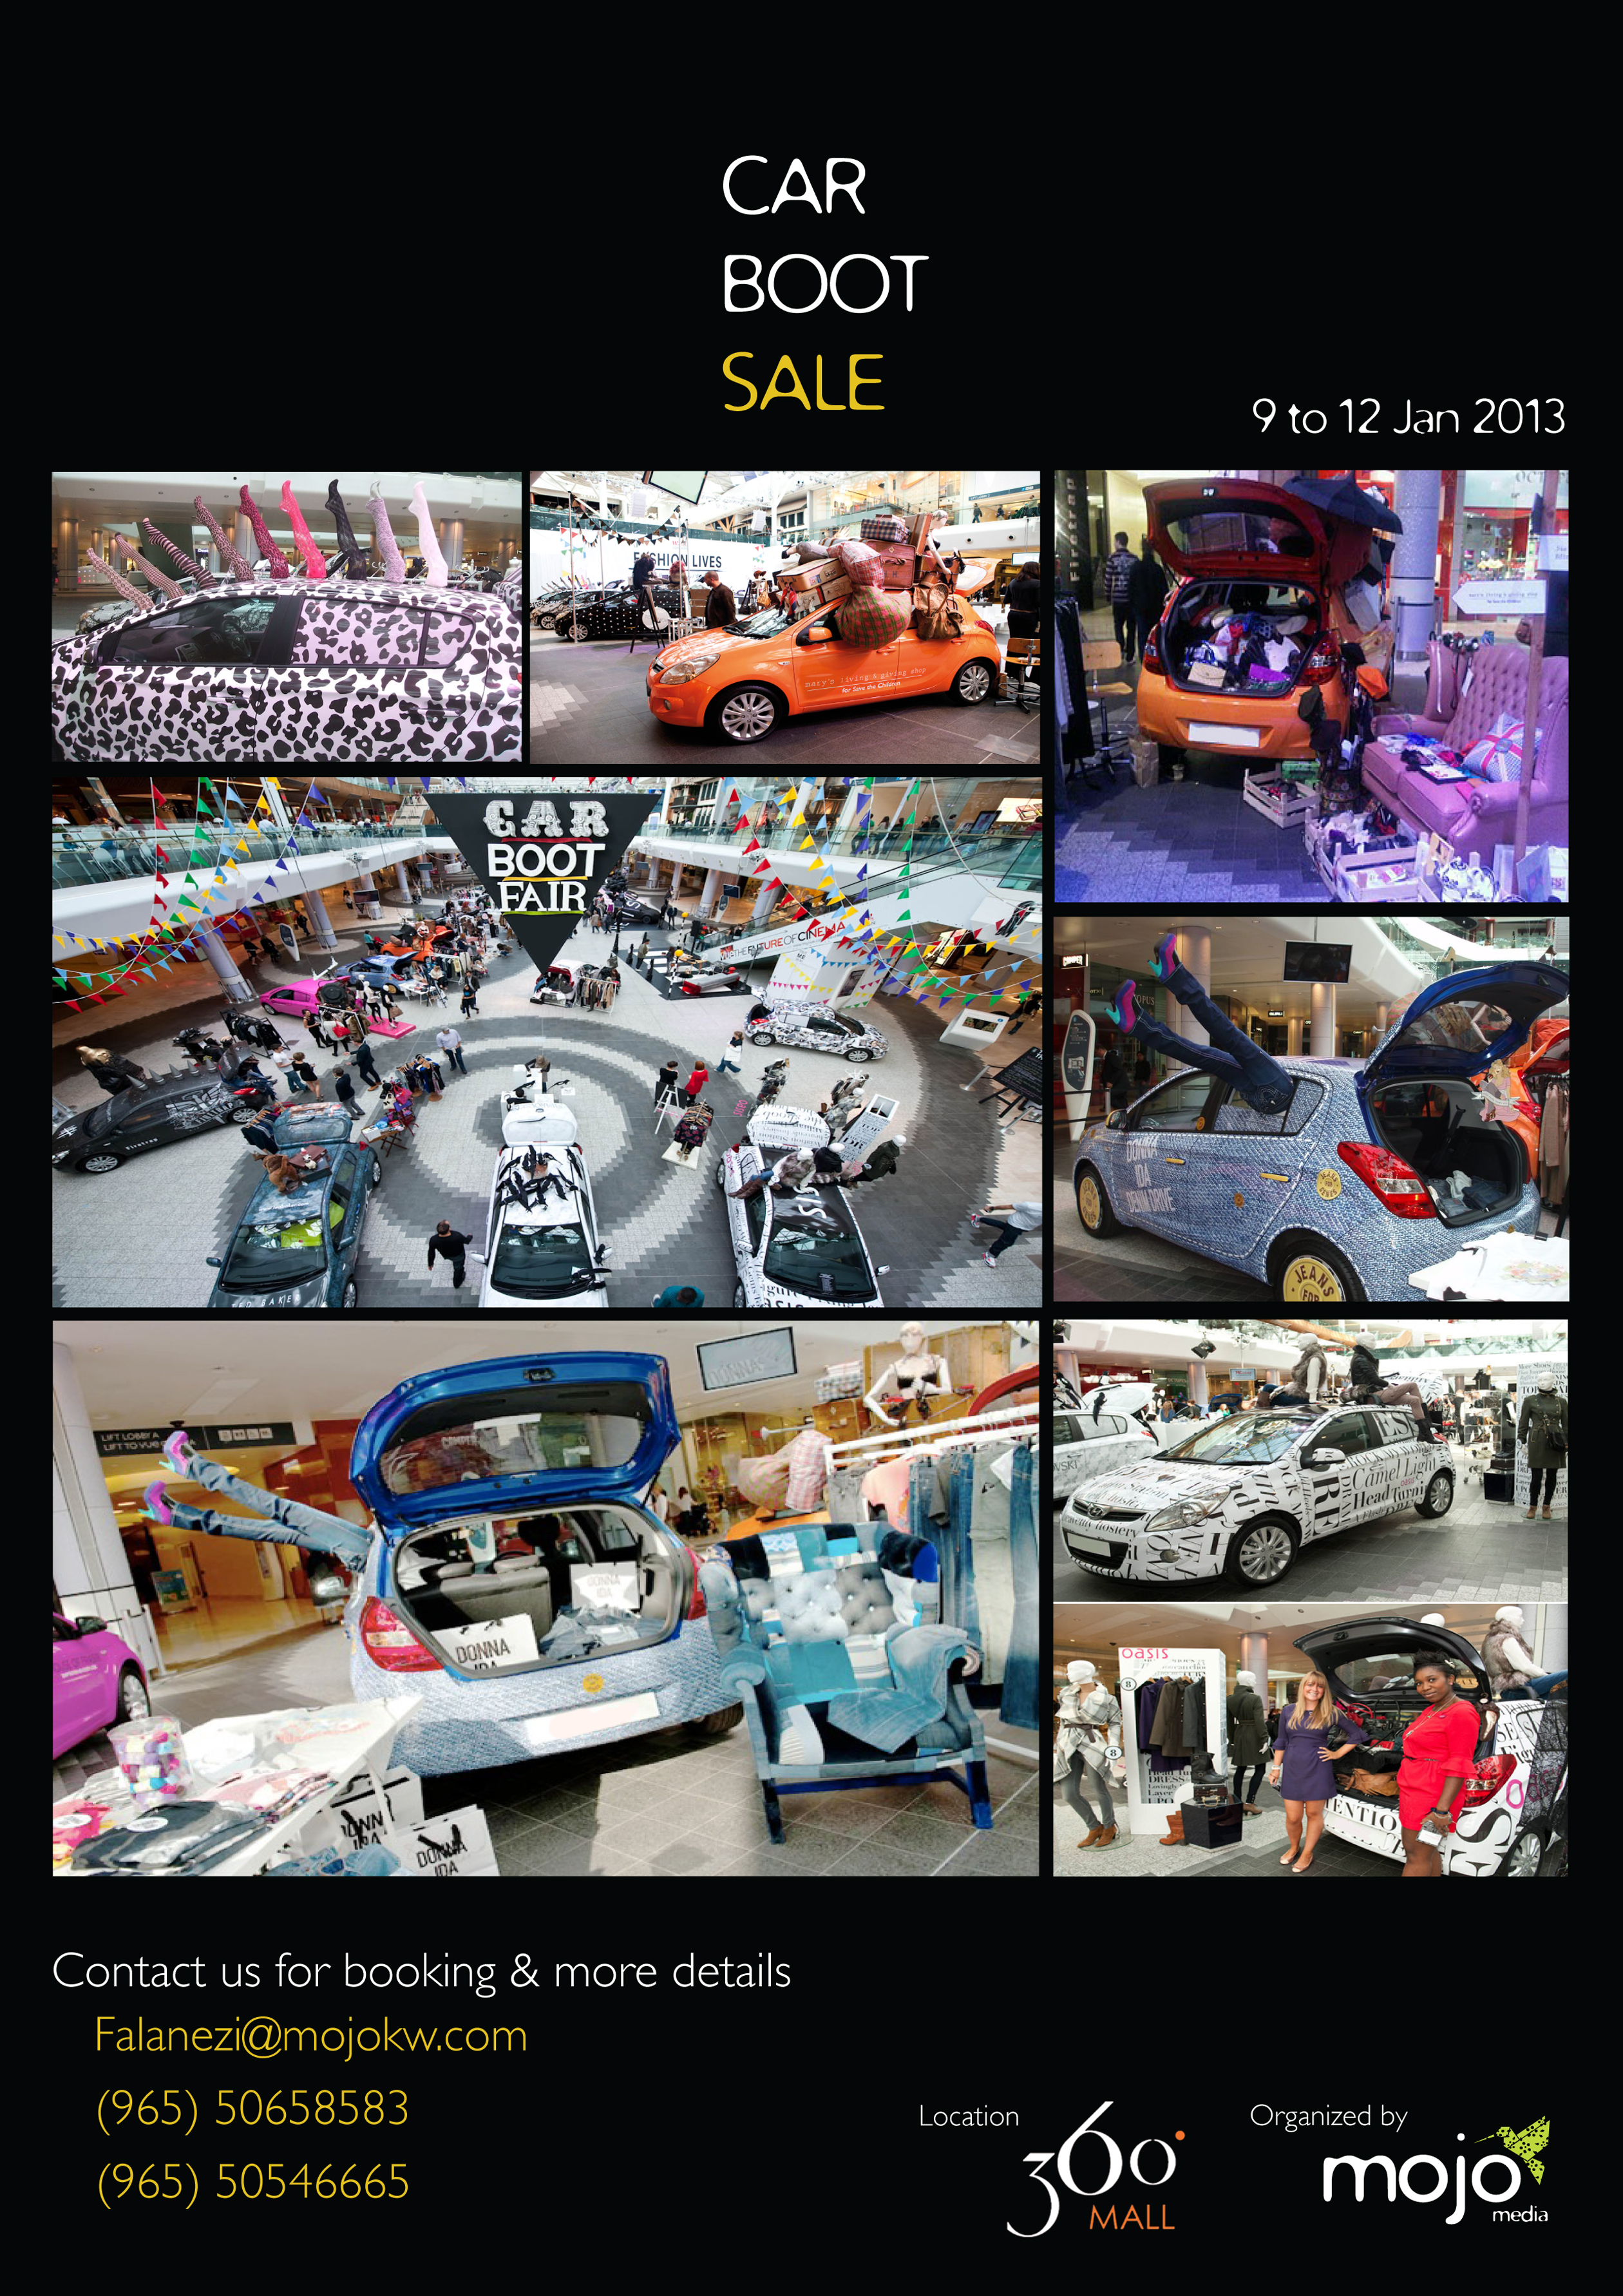 CARBOOT-blog